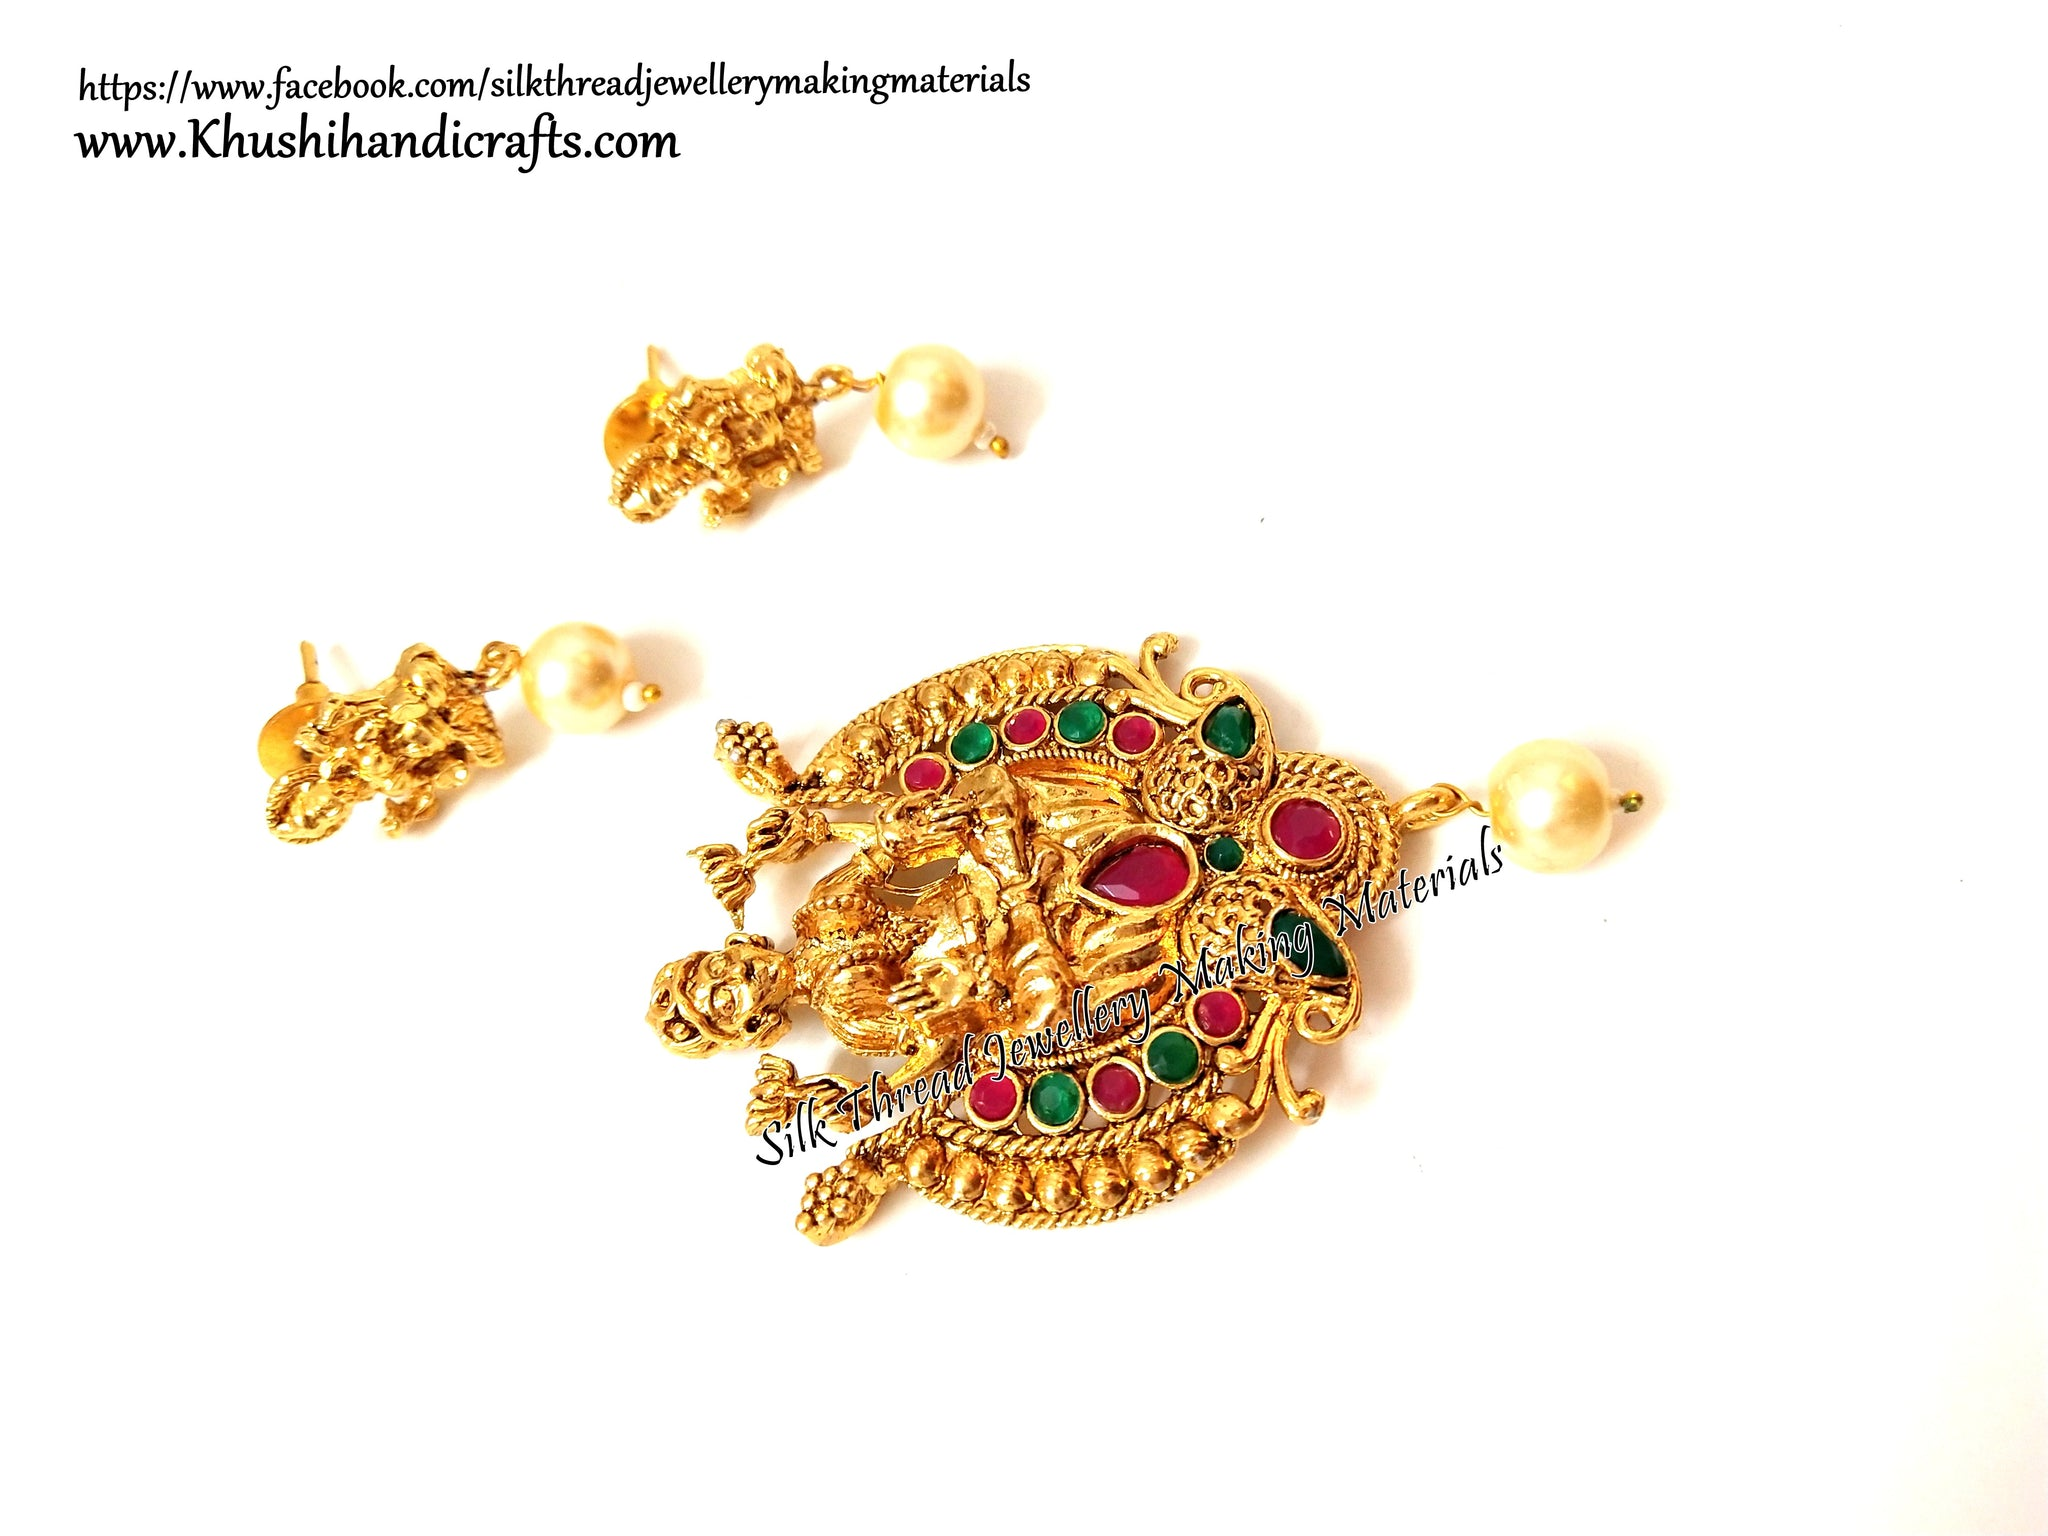 Antique Gold Lakshmi Temple Pendant